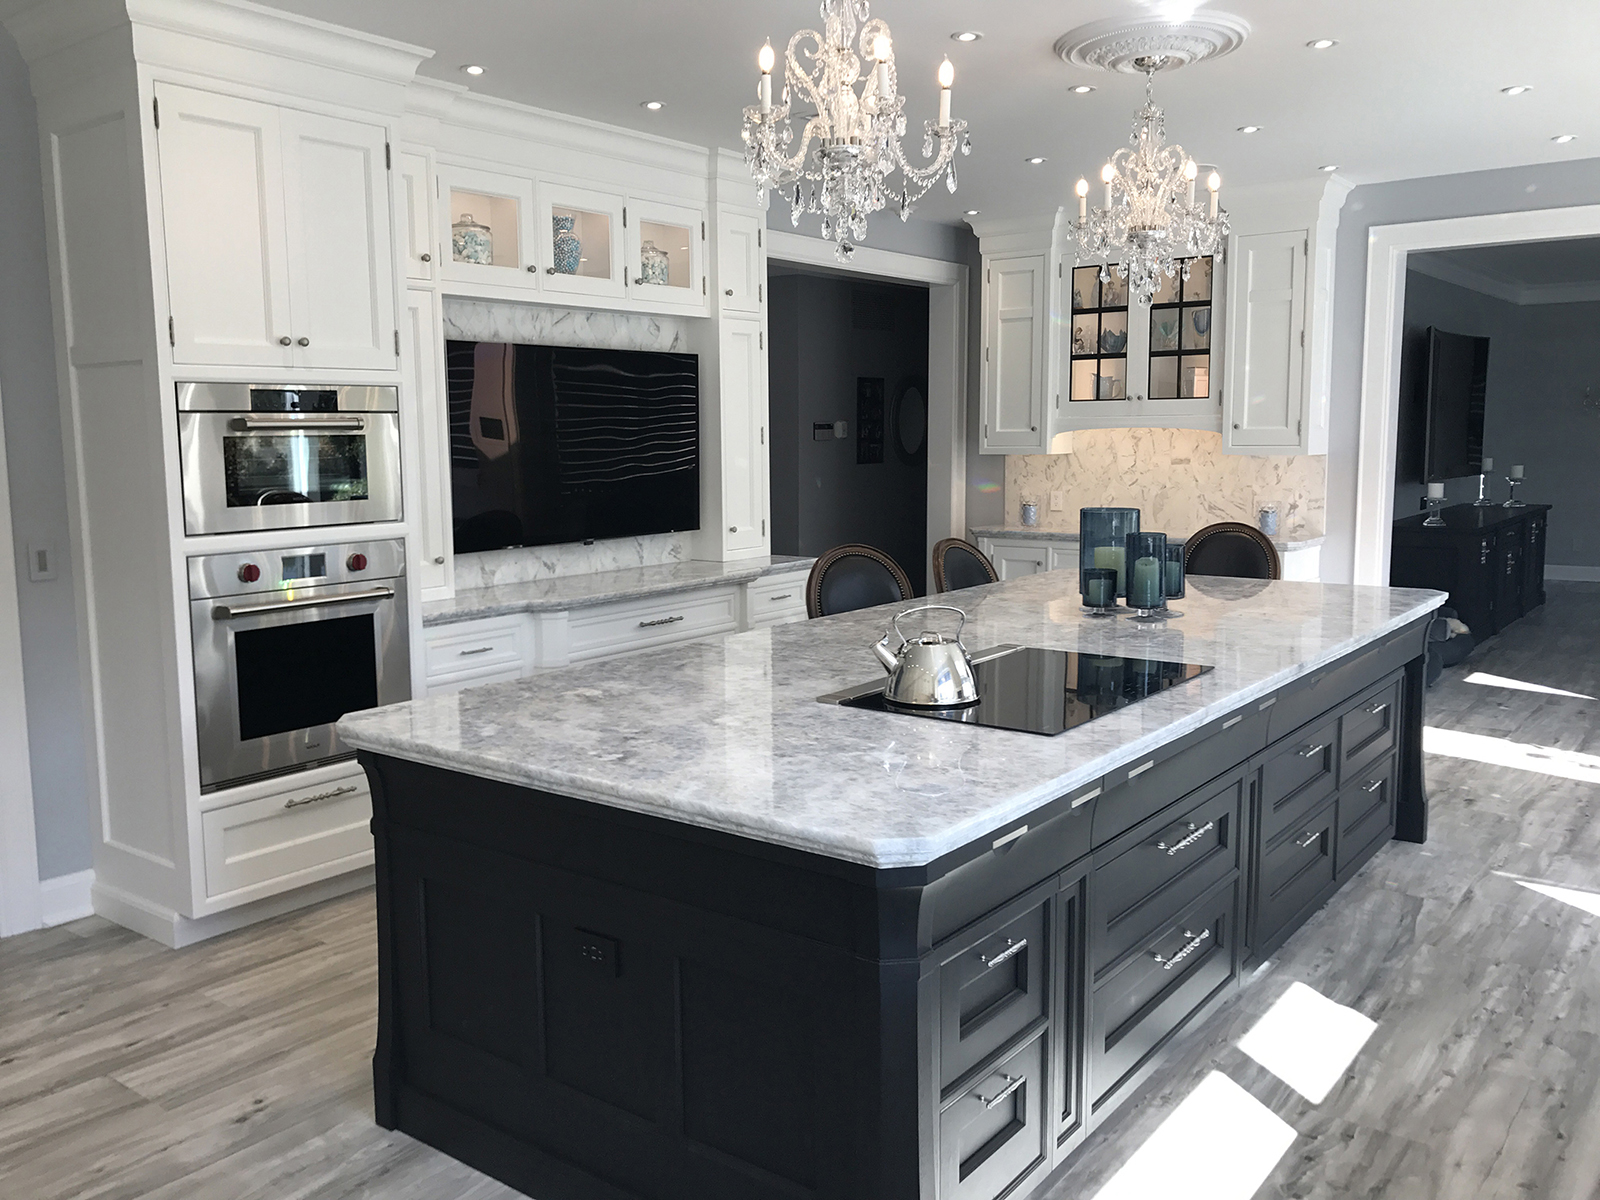 Amazing Rutt Cabinetry - RUSKIN style. Designed by Elite.